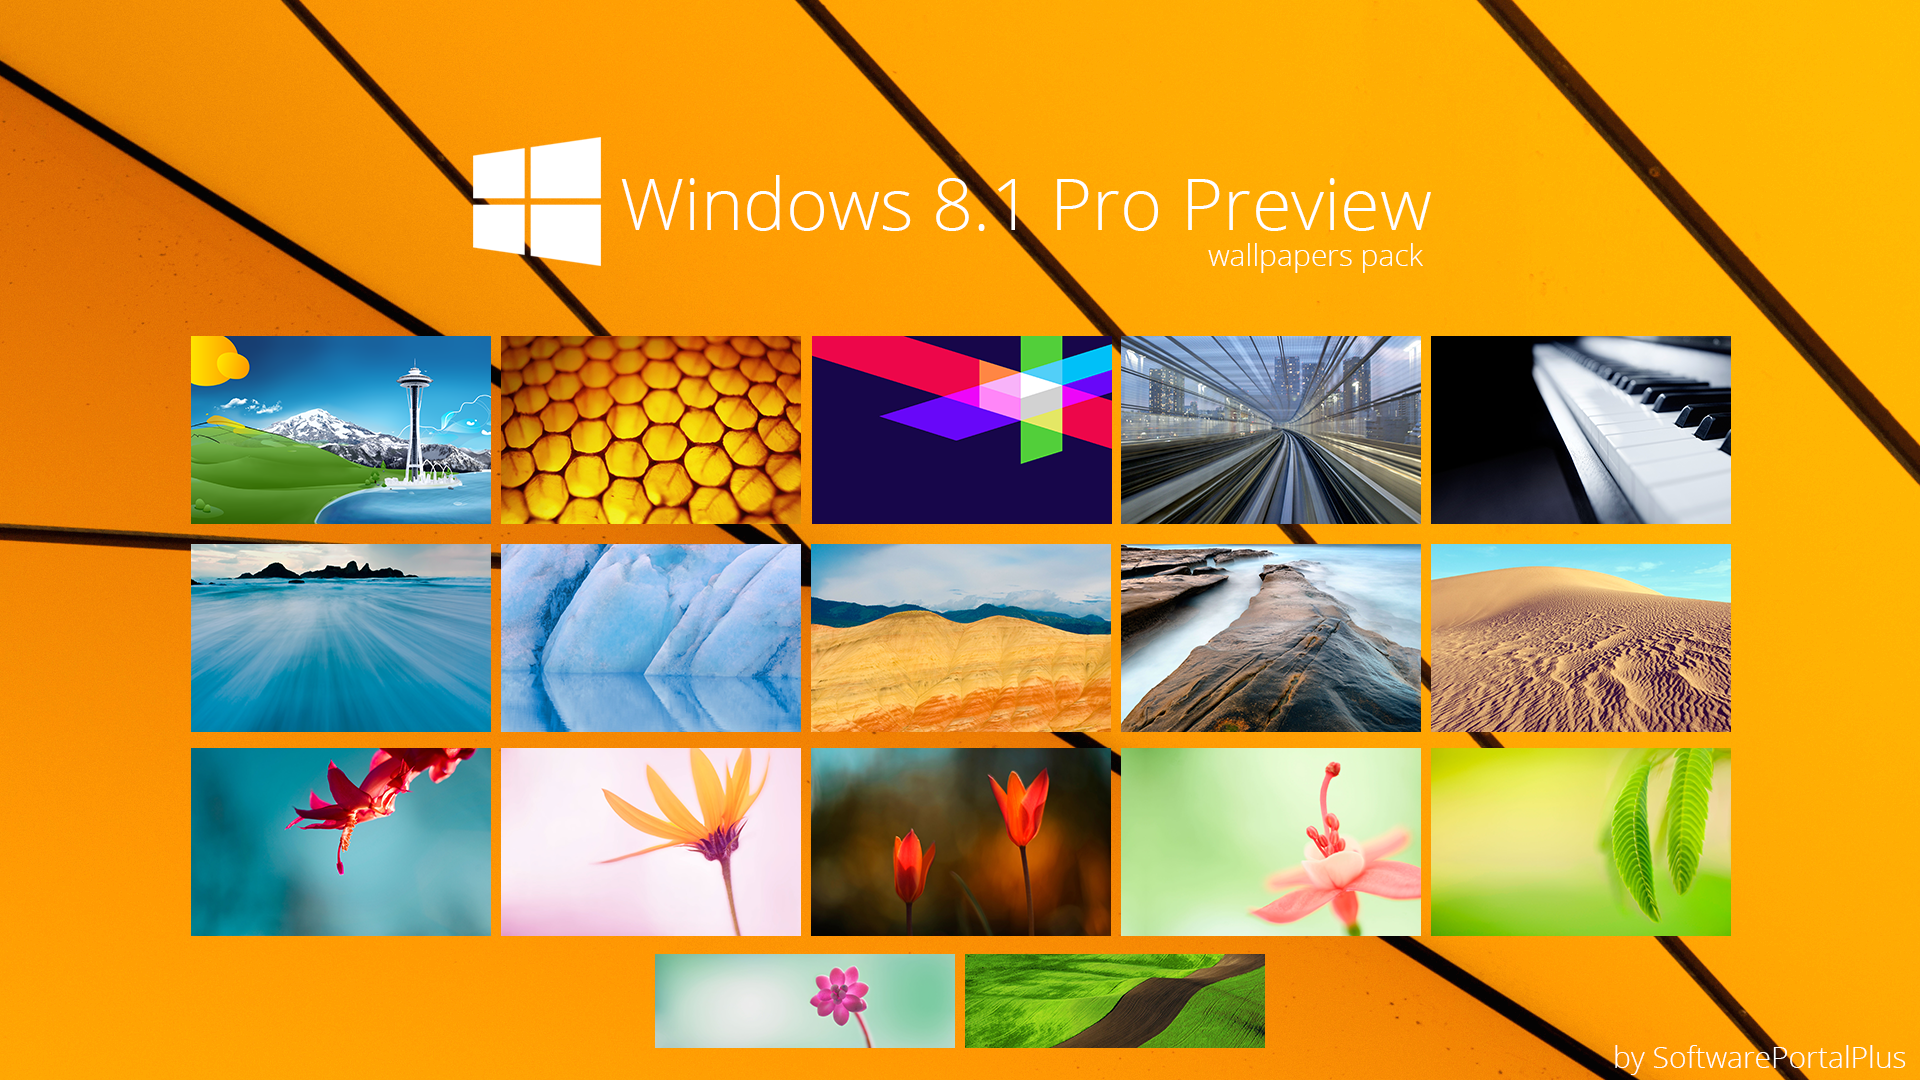 Windows 8.1 Pro Proview : Wallpapers Pack By